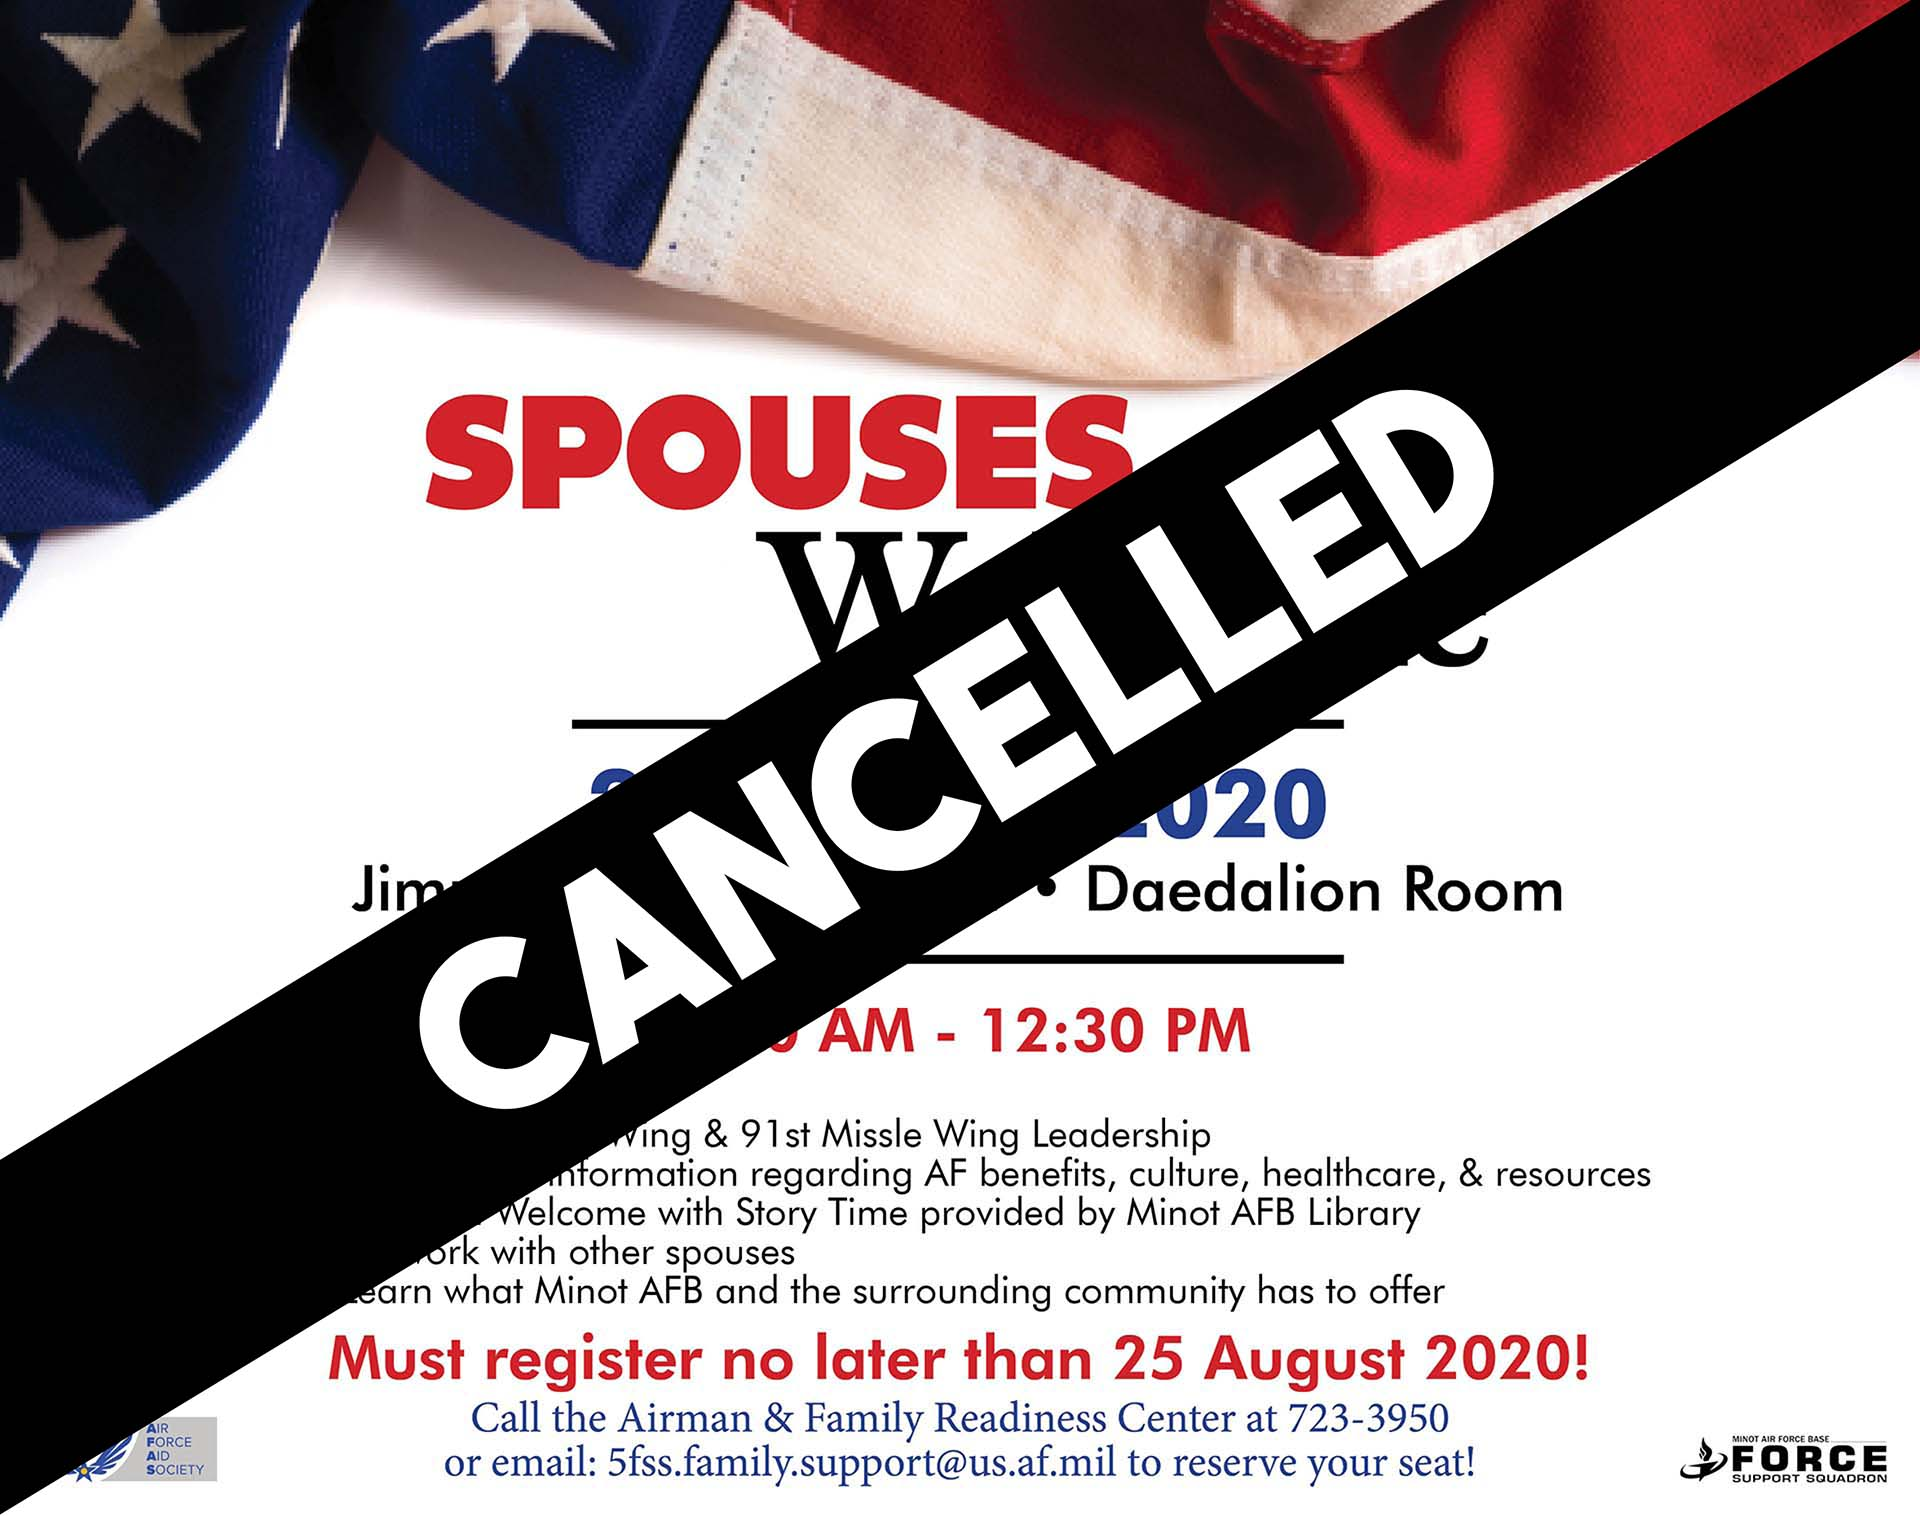 Spouses Welcome - CANCELLED